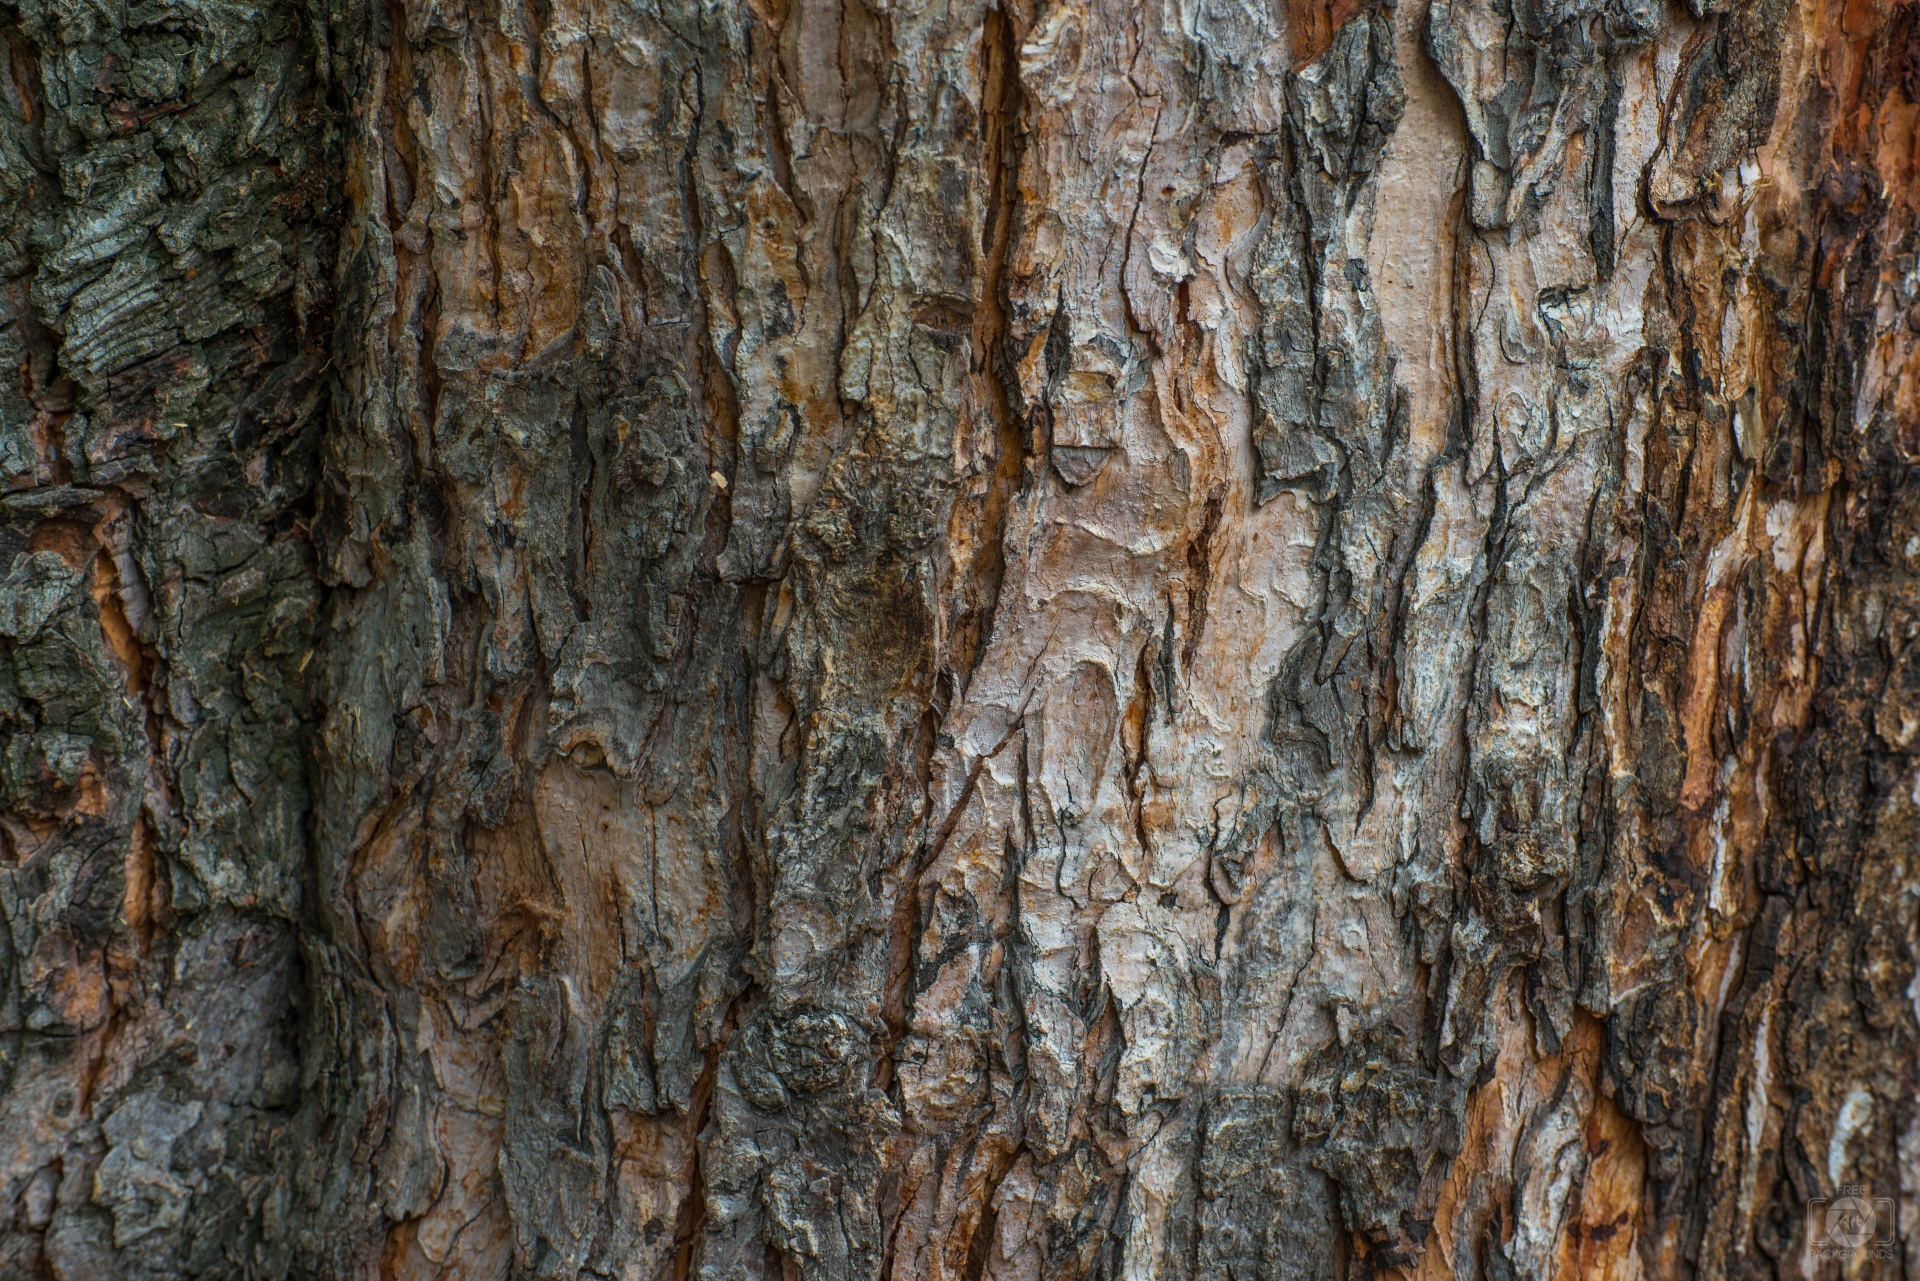 Tree Bark Background - High-quality Free Backgrounds